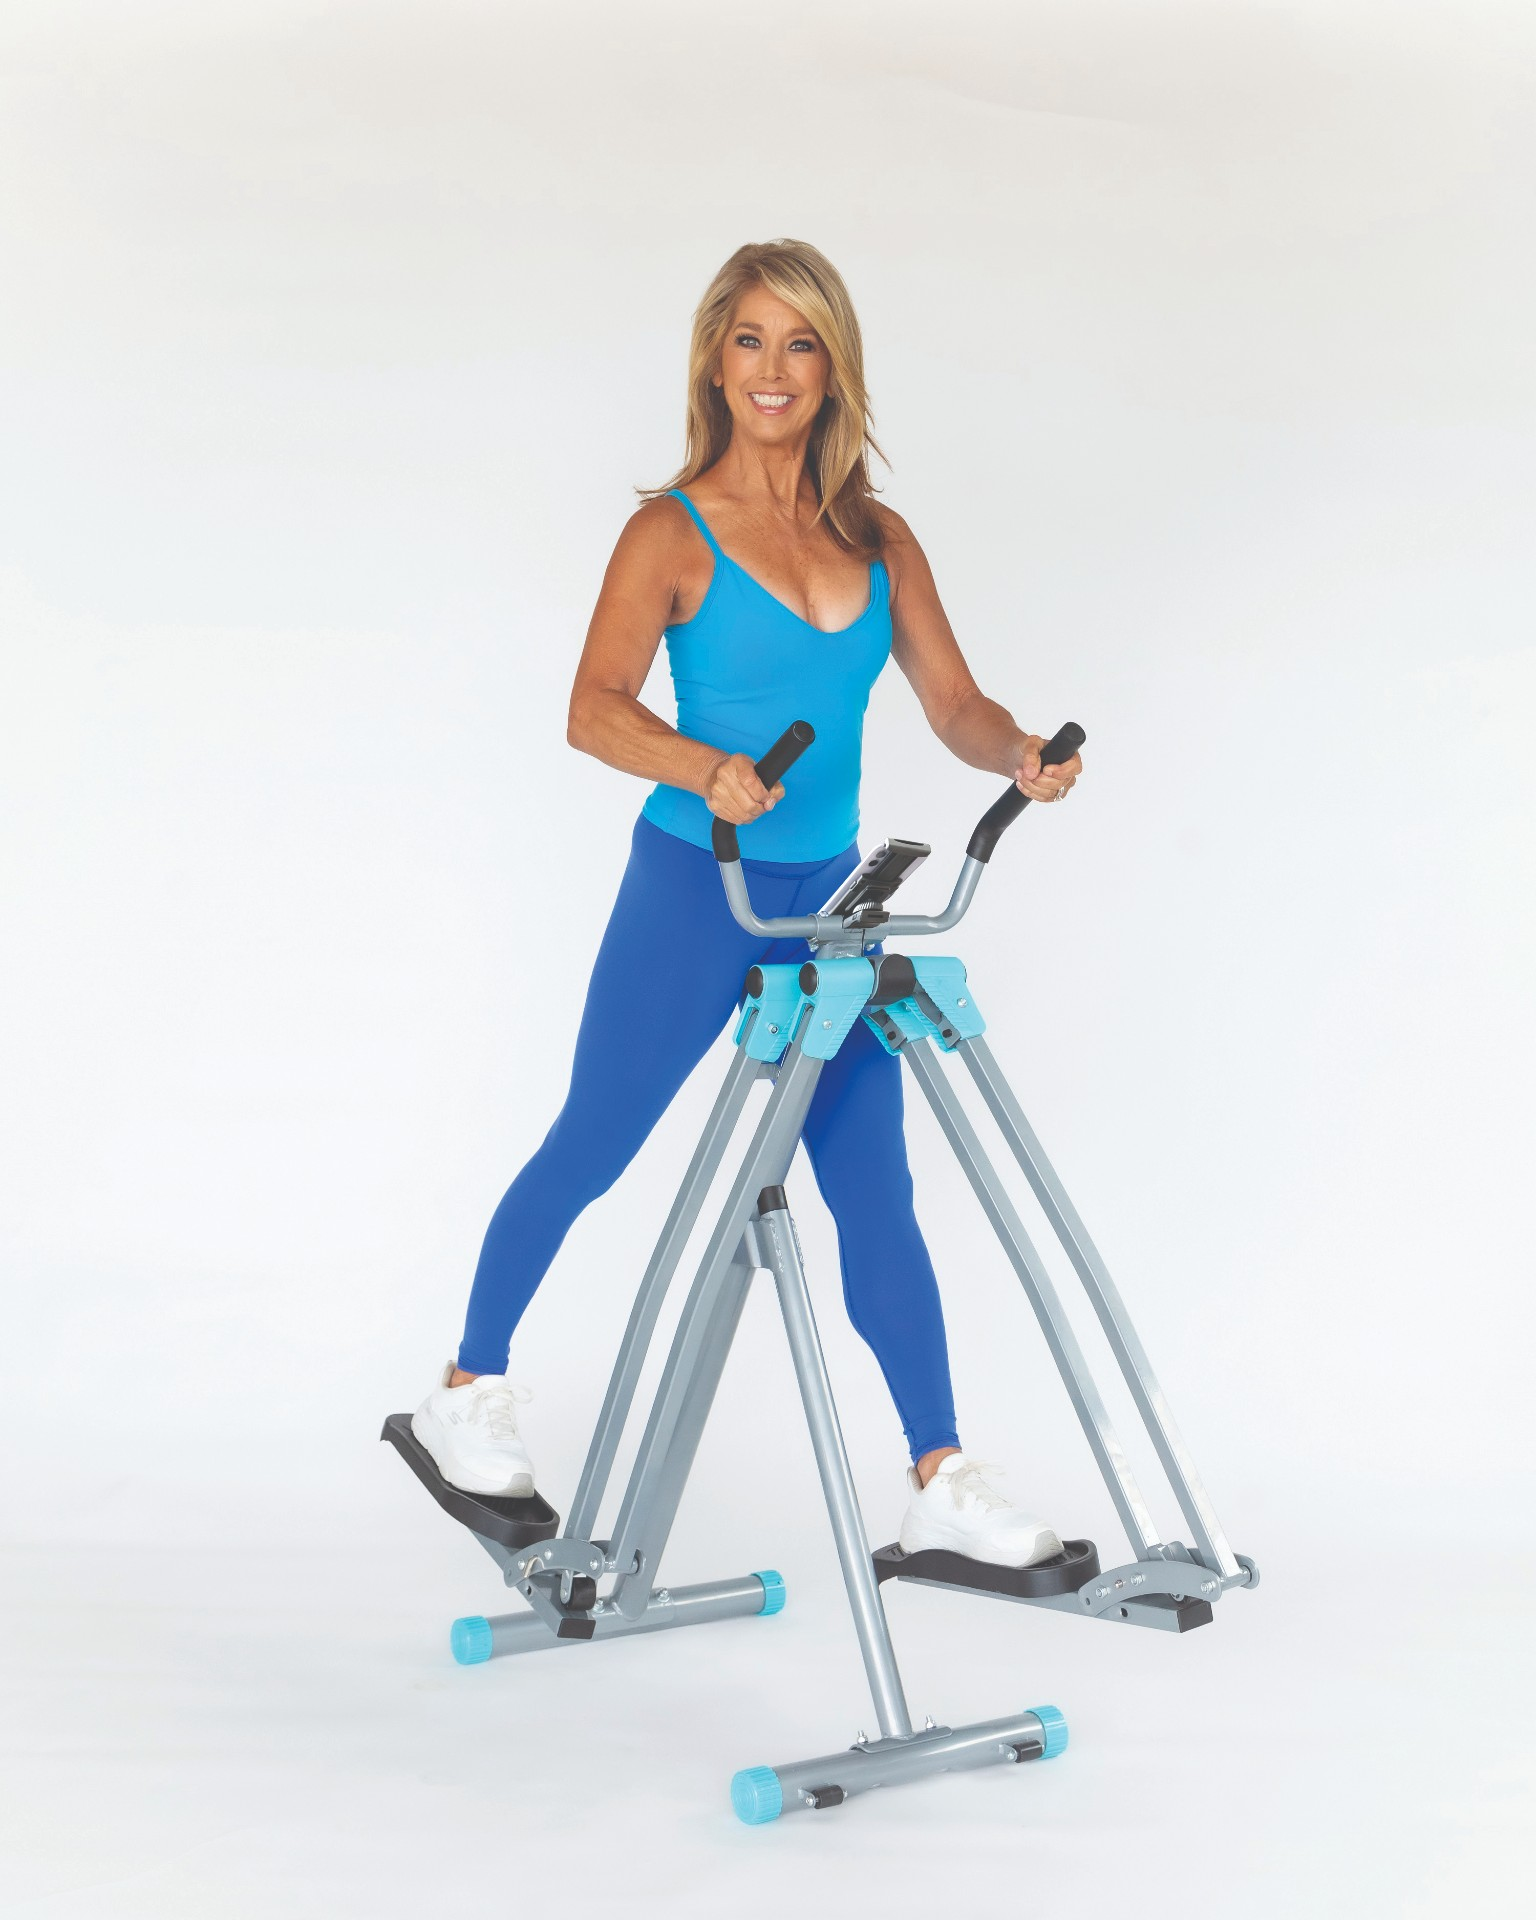 Your No-Impact Workout Is Here – Introducing the EVER BETTER™ Air Walker!